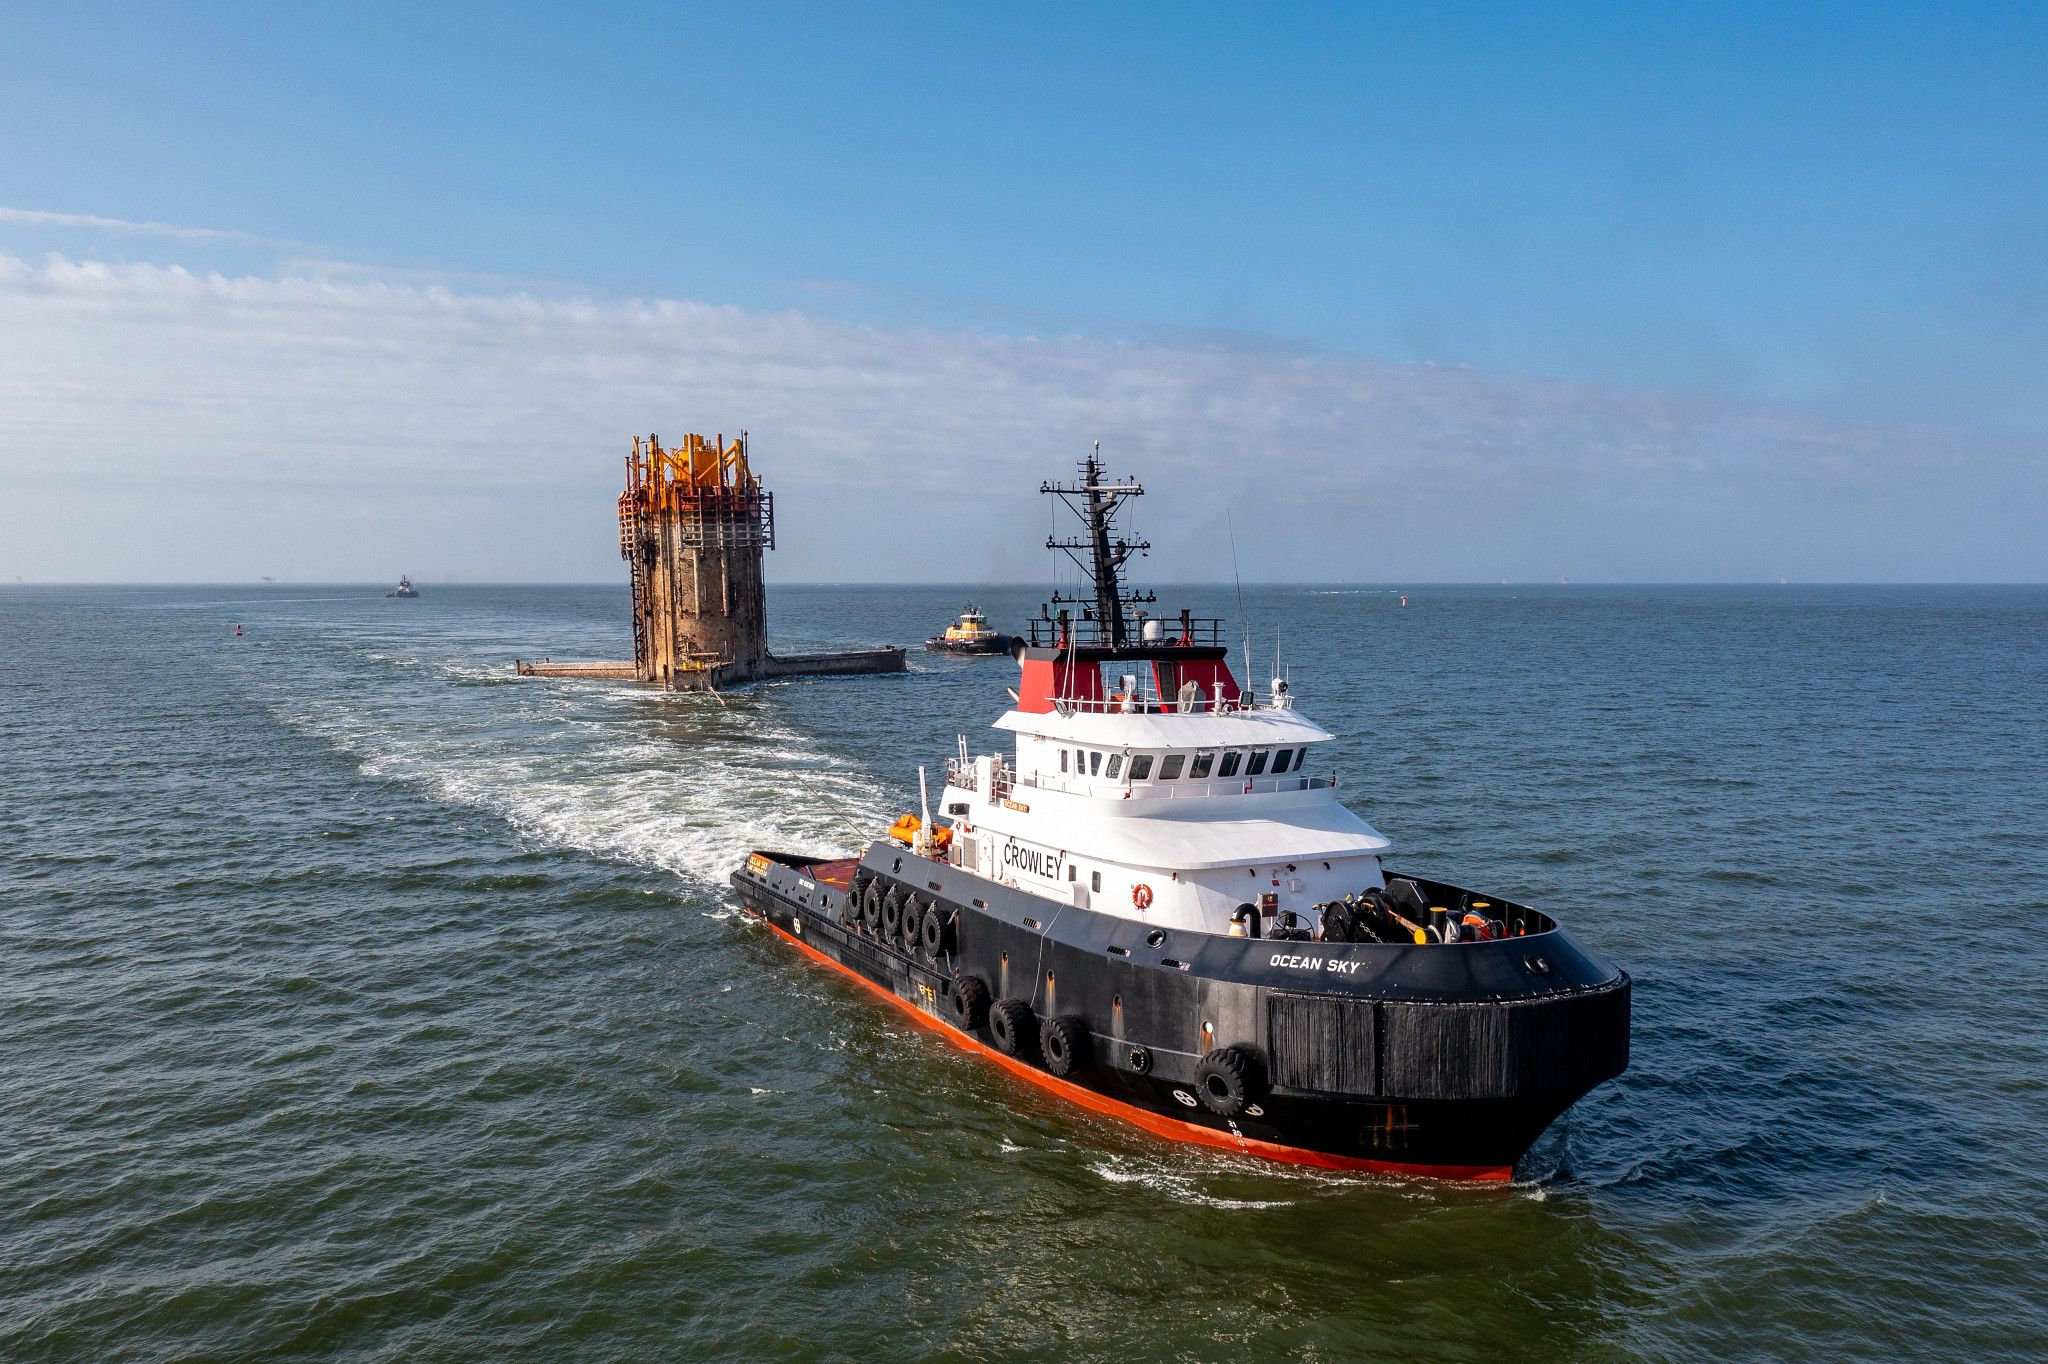 Crowley tus tow decommissioned TLP